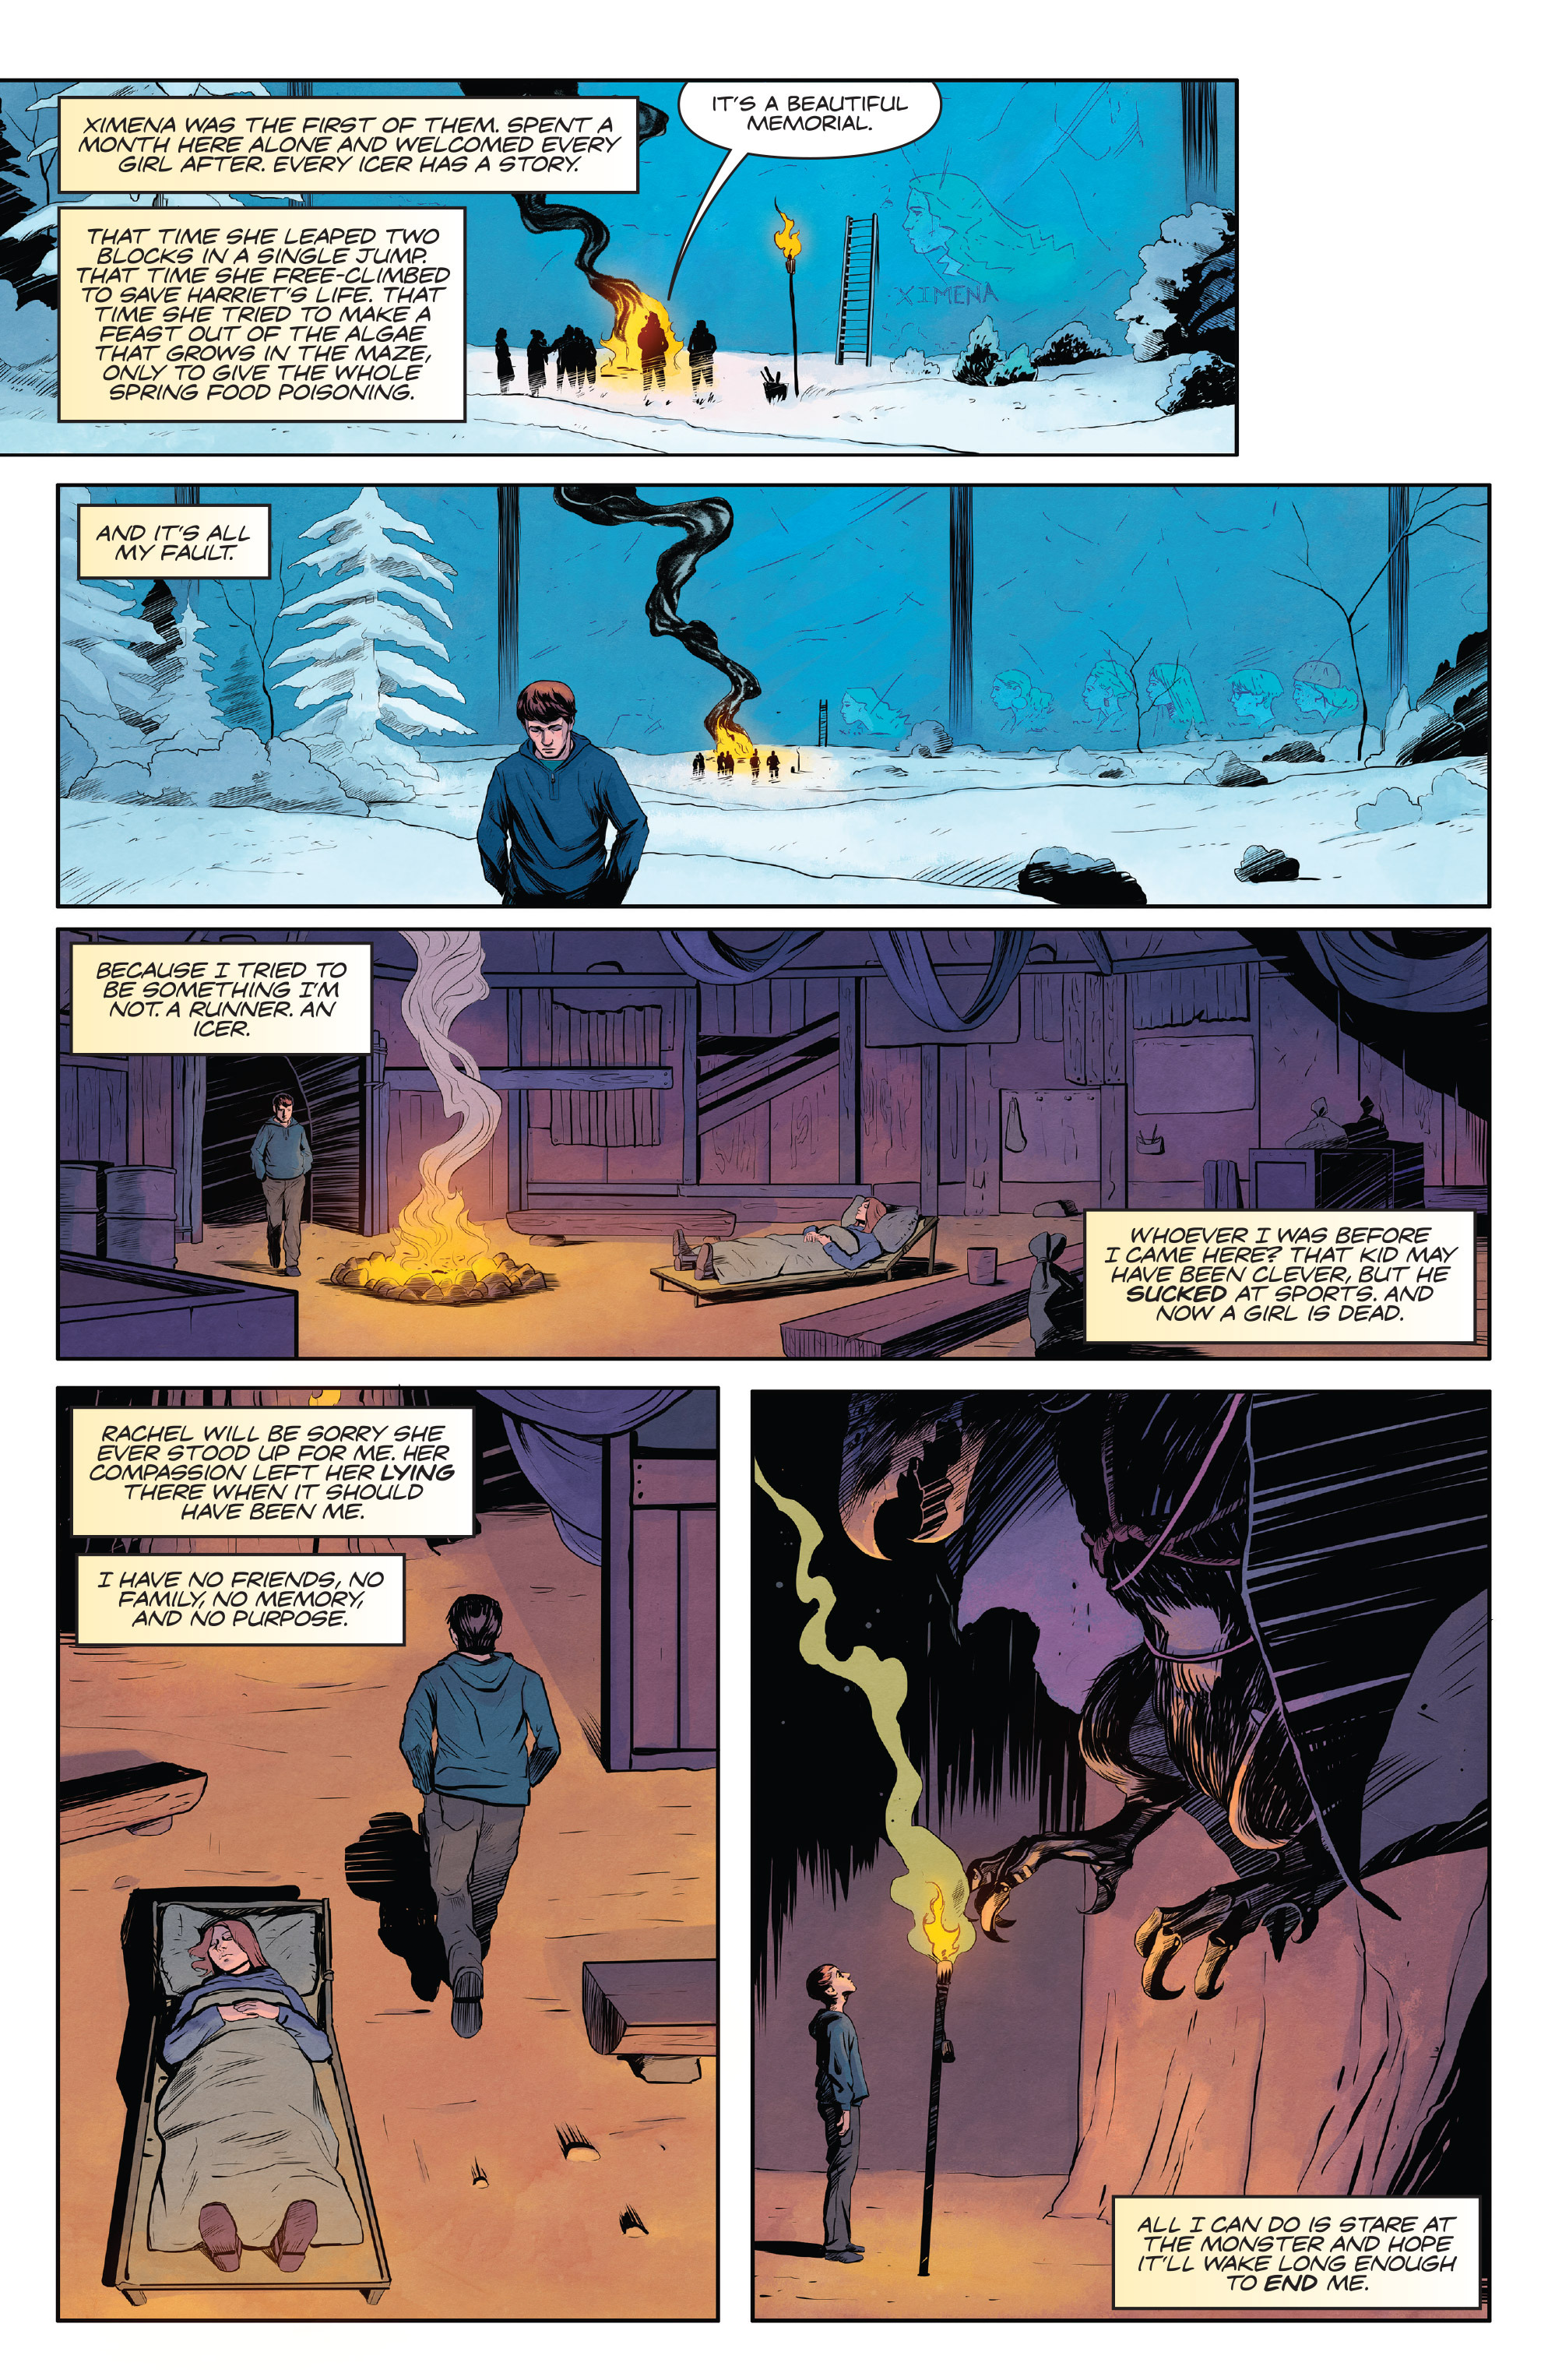 Maze runner the scorch trials official graphic novel prelude read maze runner the scorch trials official graphic novel prelude chapter pic 39 fandeluxe Images